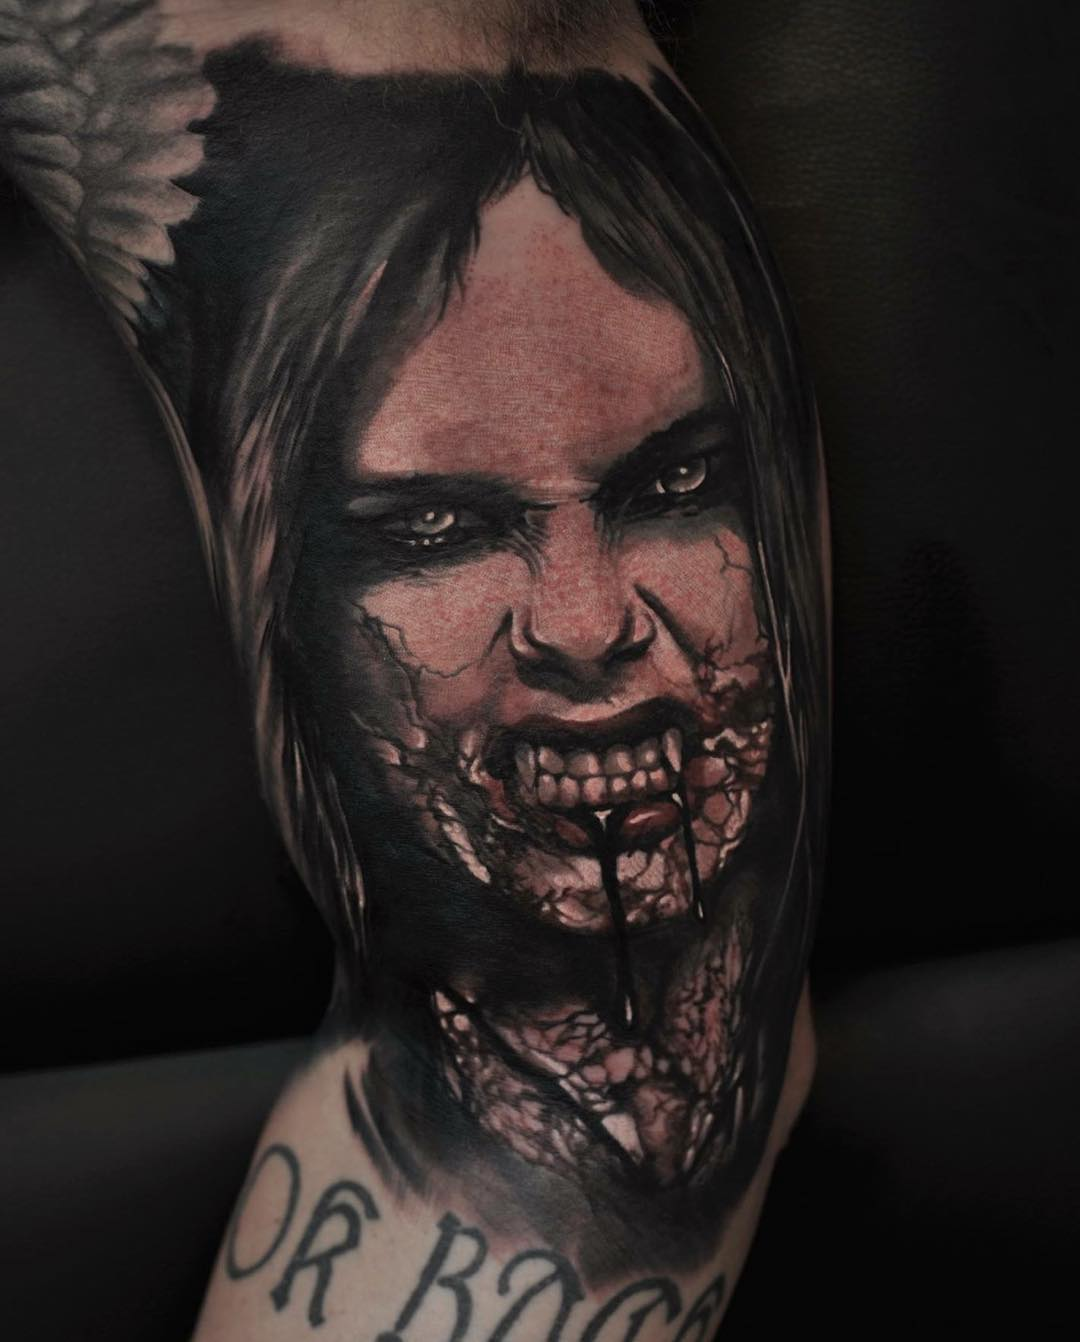 Tattoo Woman Zombie: Zombie Girl Face With Dipping Blood Tattoo